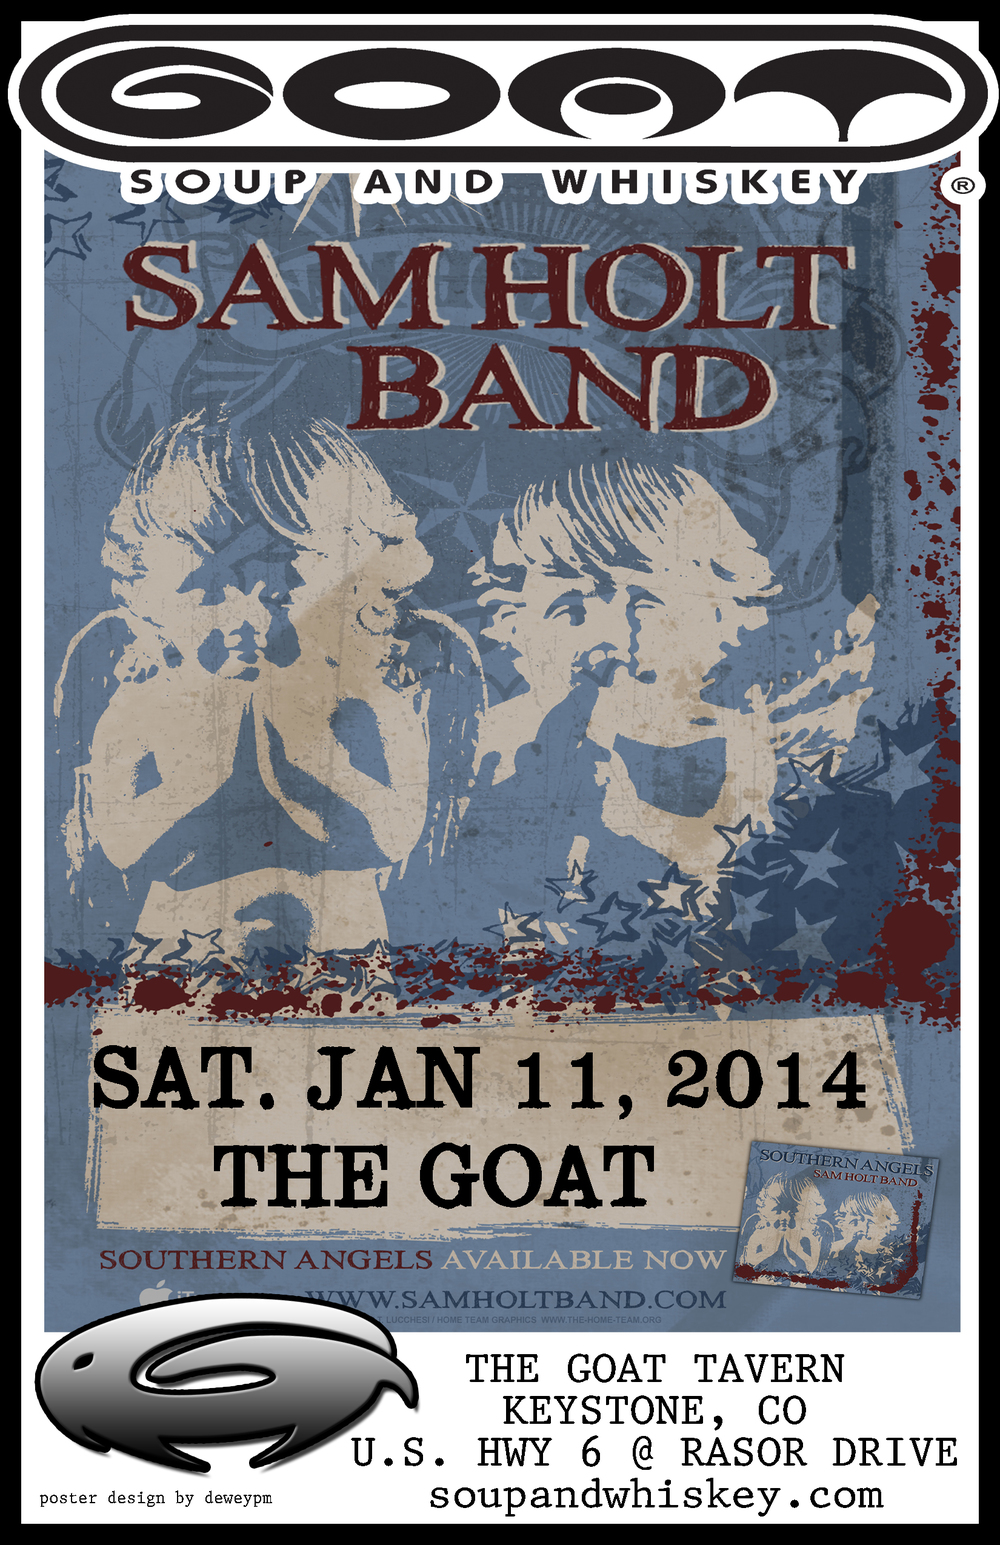 SAM-HOLT-BAND-2014-WEB.jpg